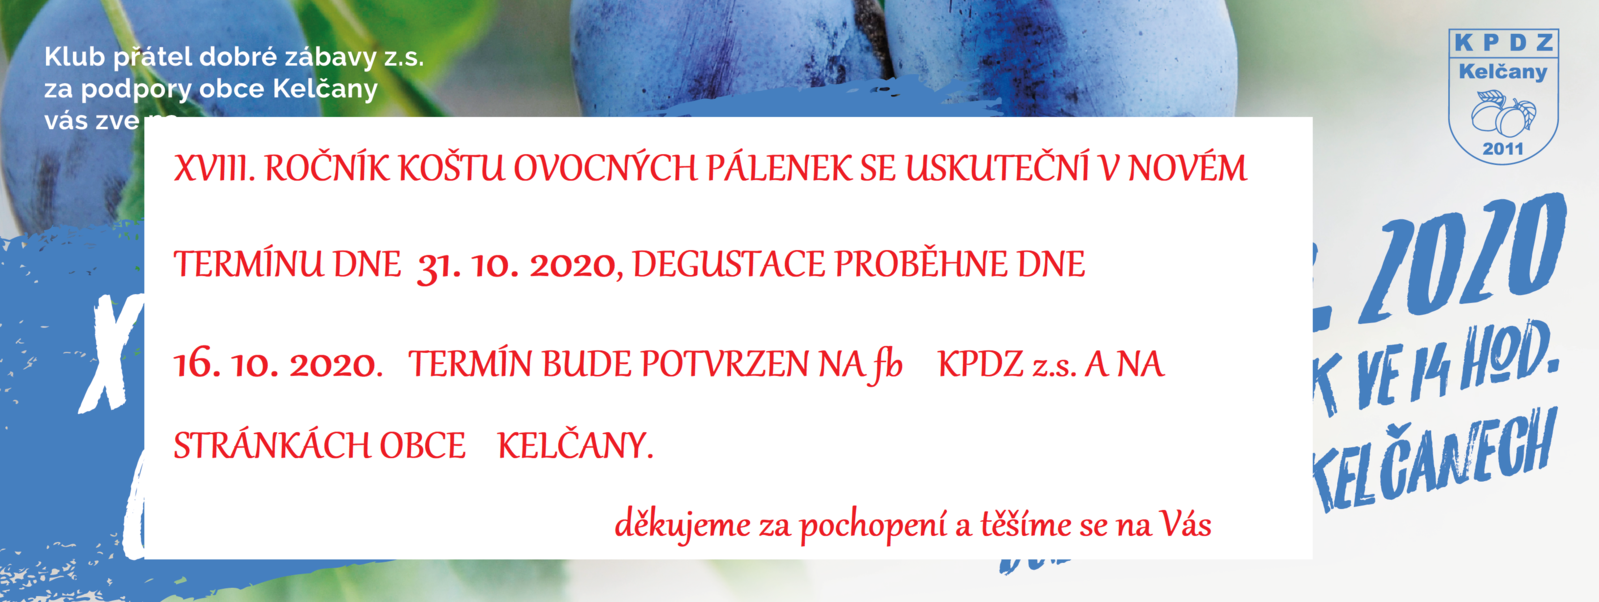 2_fb udalost kost kelcany .png